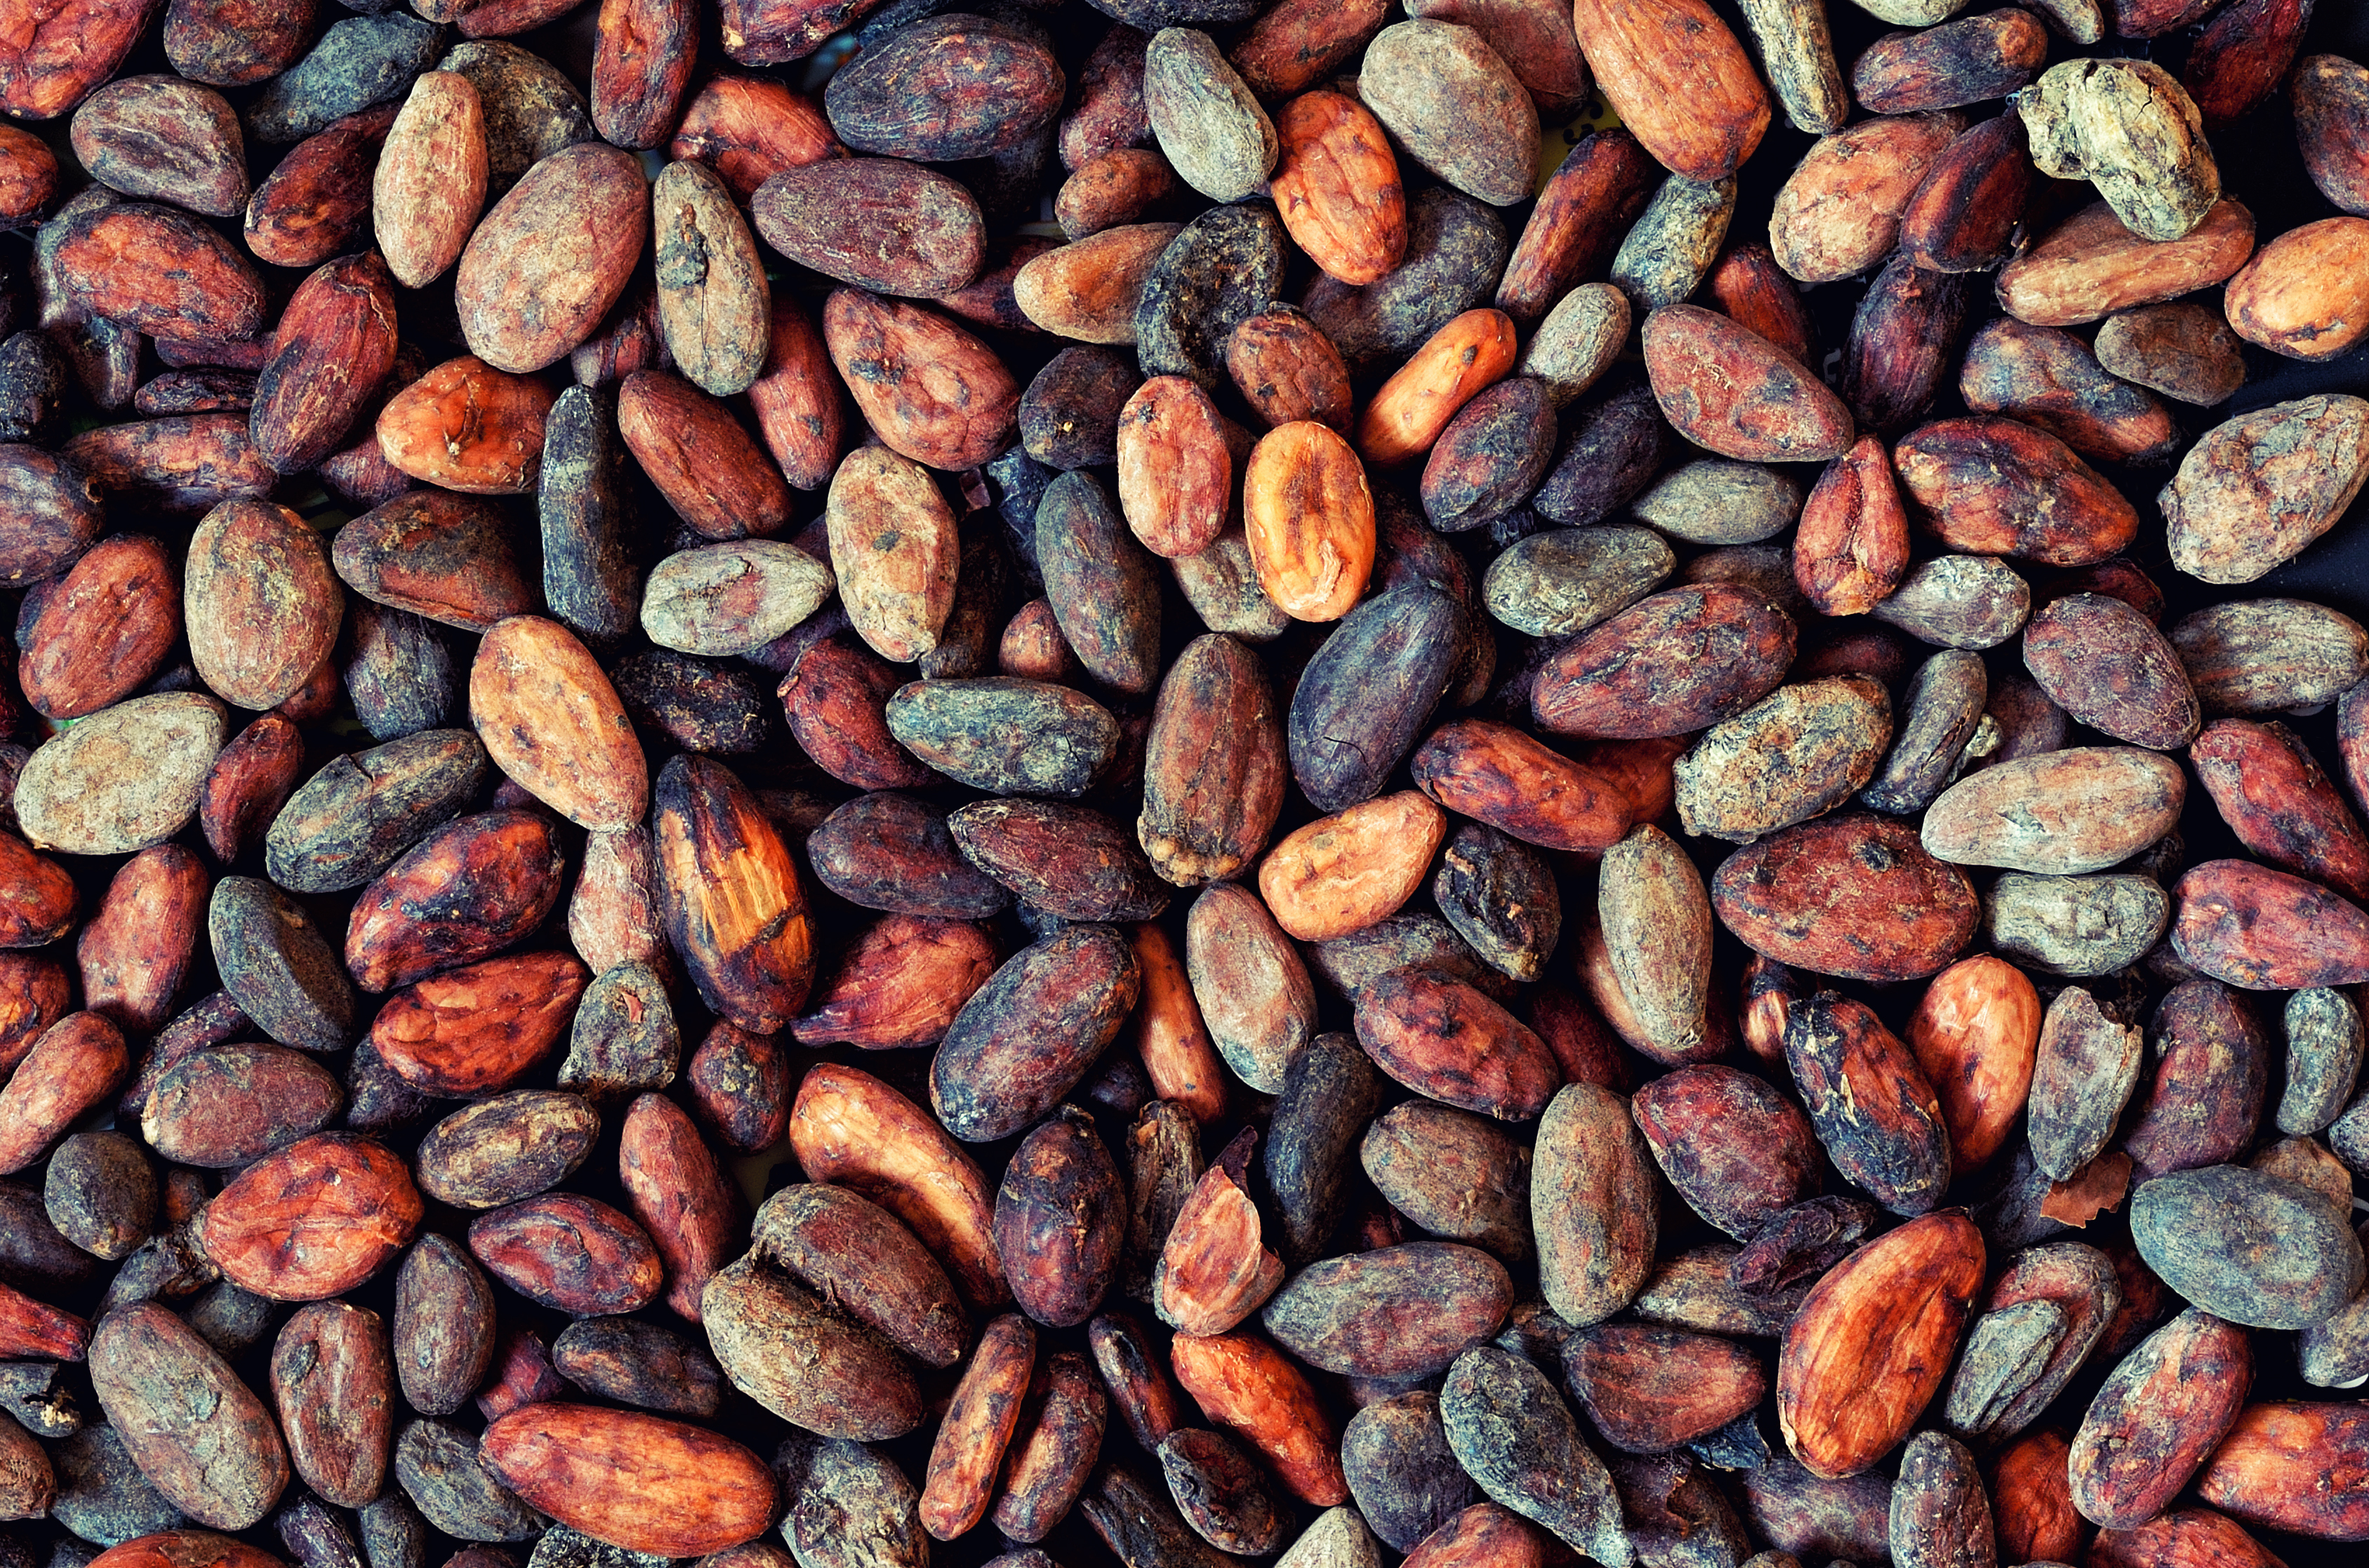 pattern of the cocoa beans background.jp